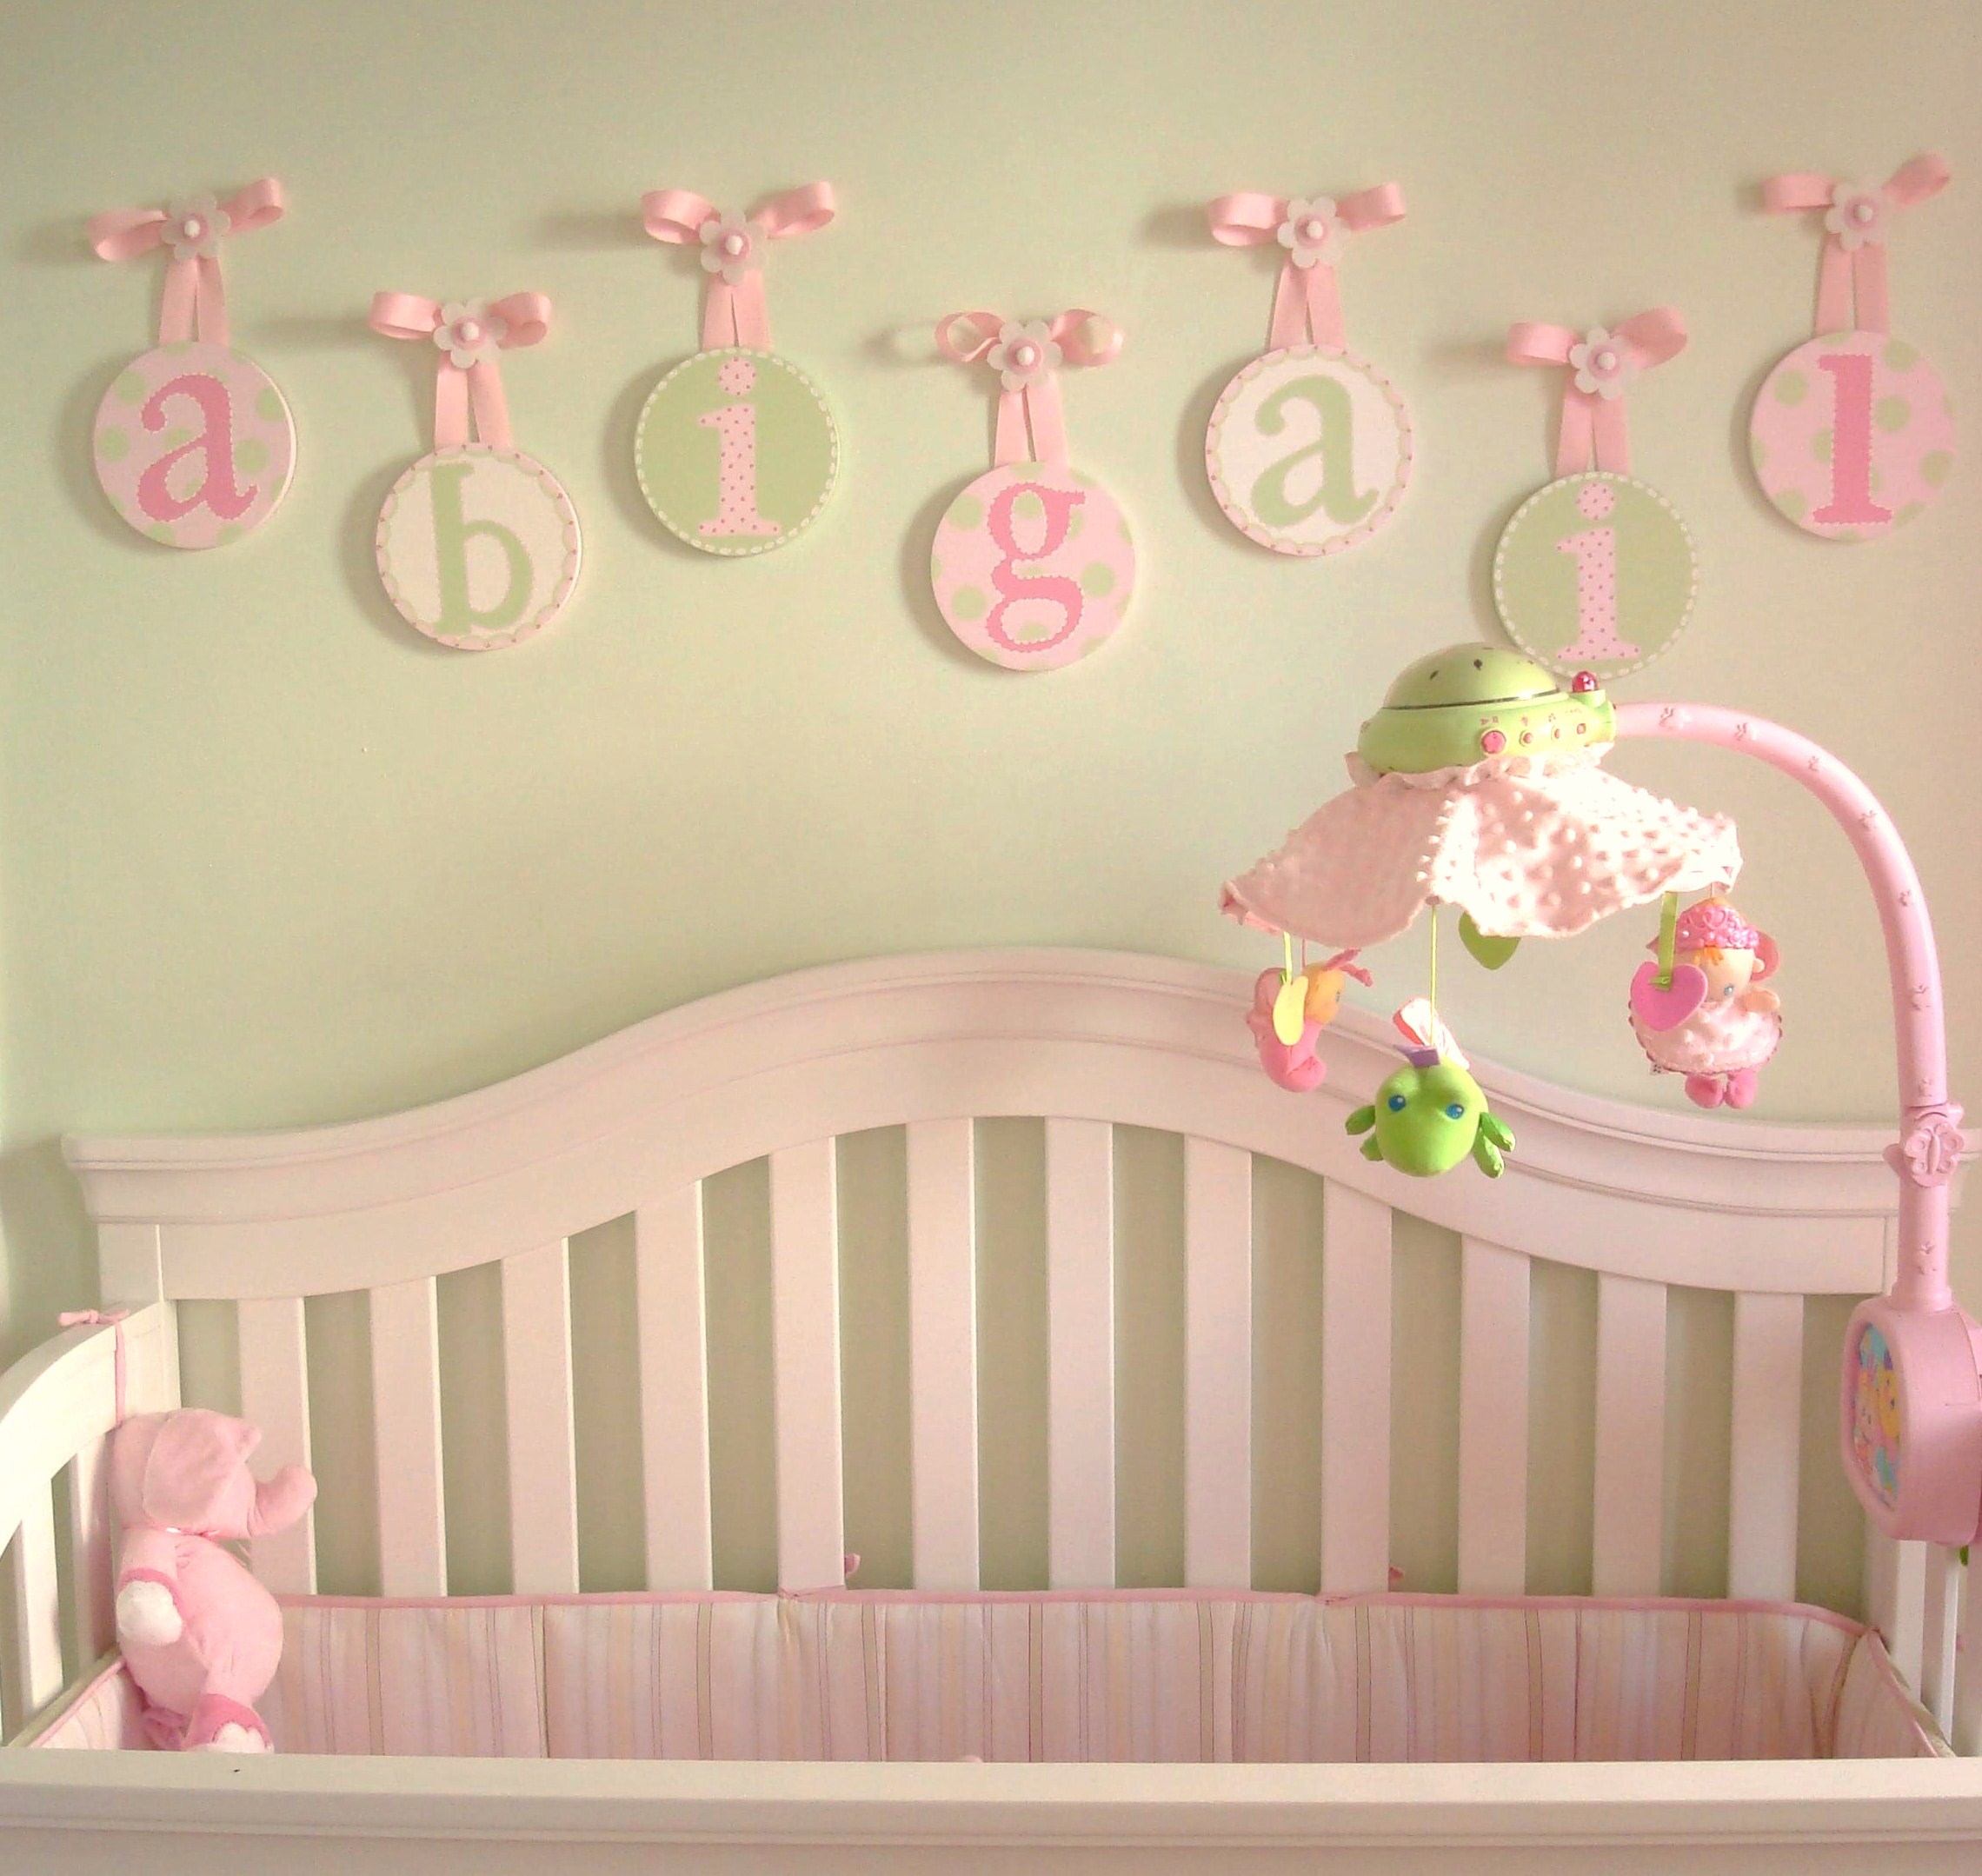 Hanging letters for Baby nursery wall decoration